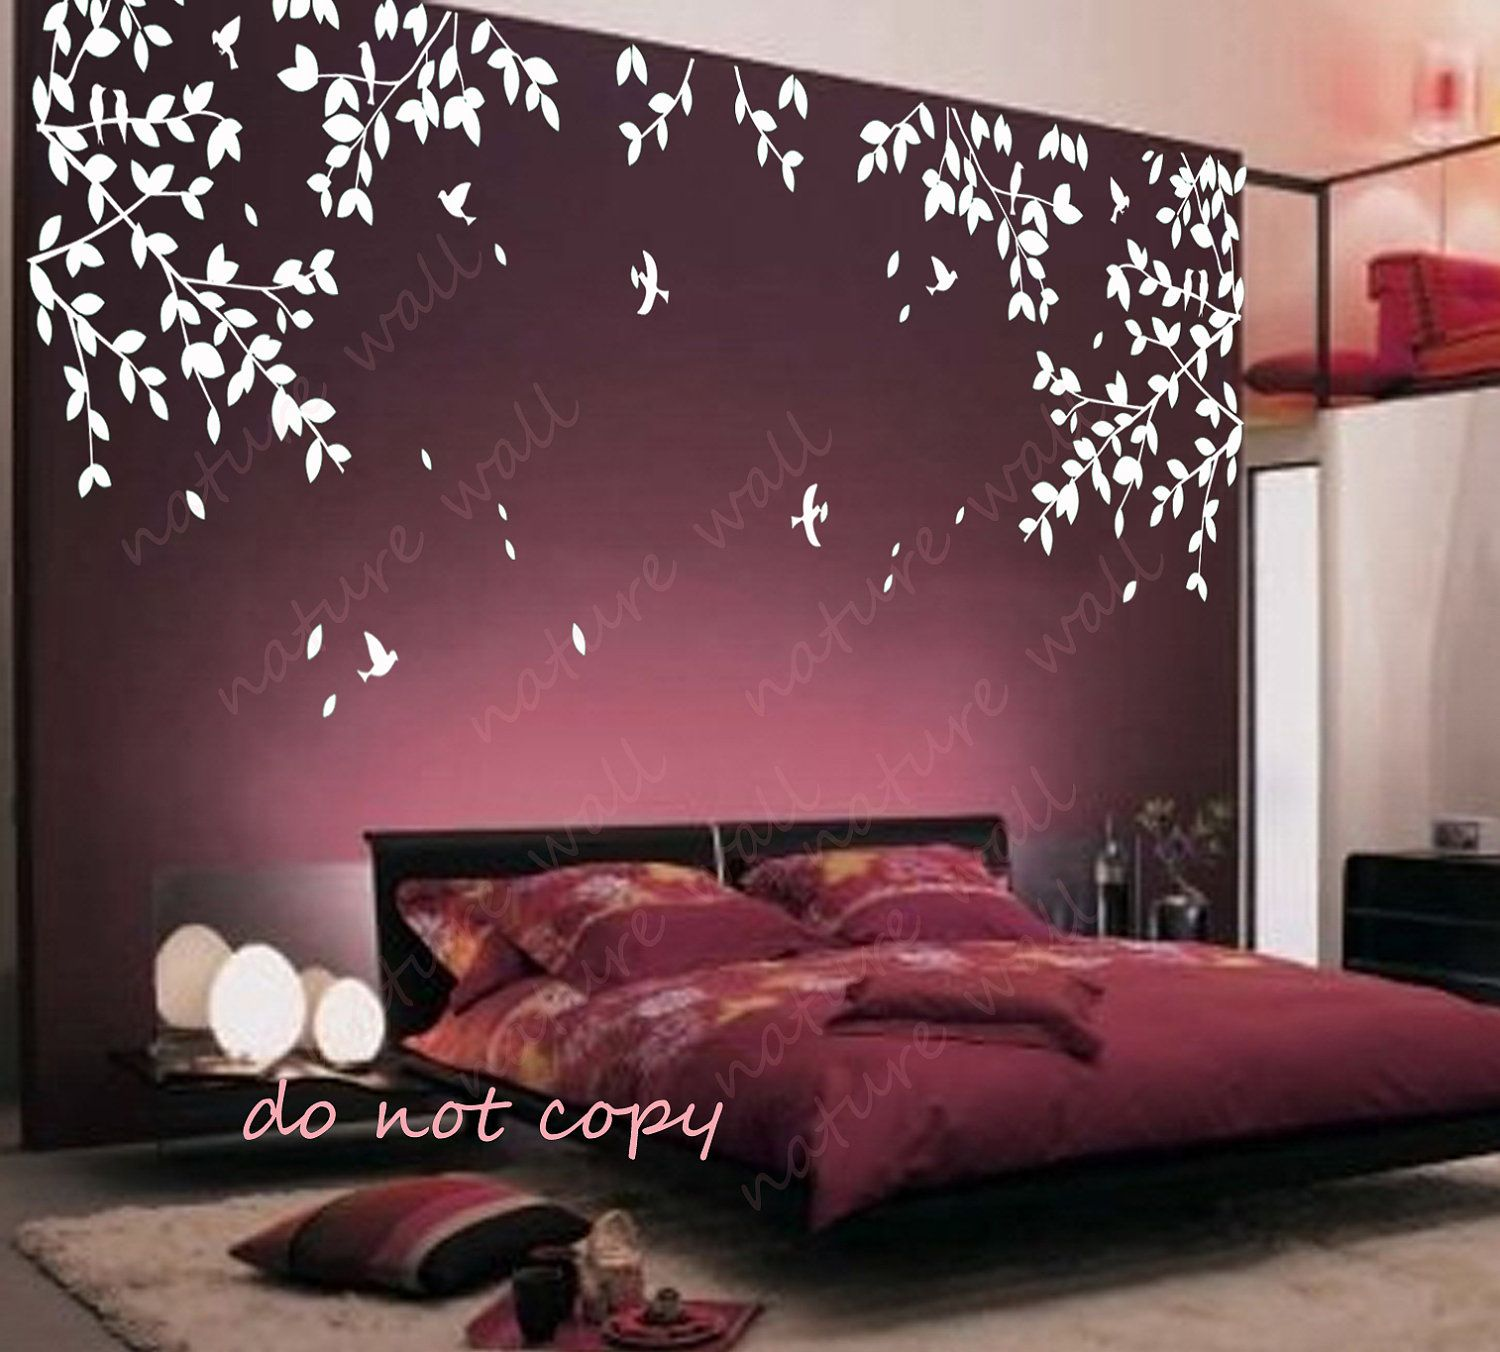 Wonderful Tree Wall Decals Wall Stickers Living Room Decal Bed Room Decor Decal Baby  Decal Kids Wall Art Kids Decal Art Decor Murals Graphic White Tree The